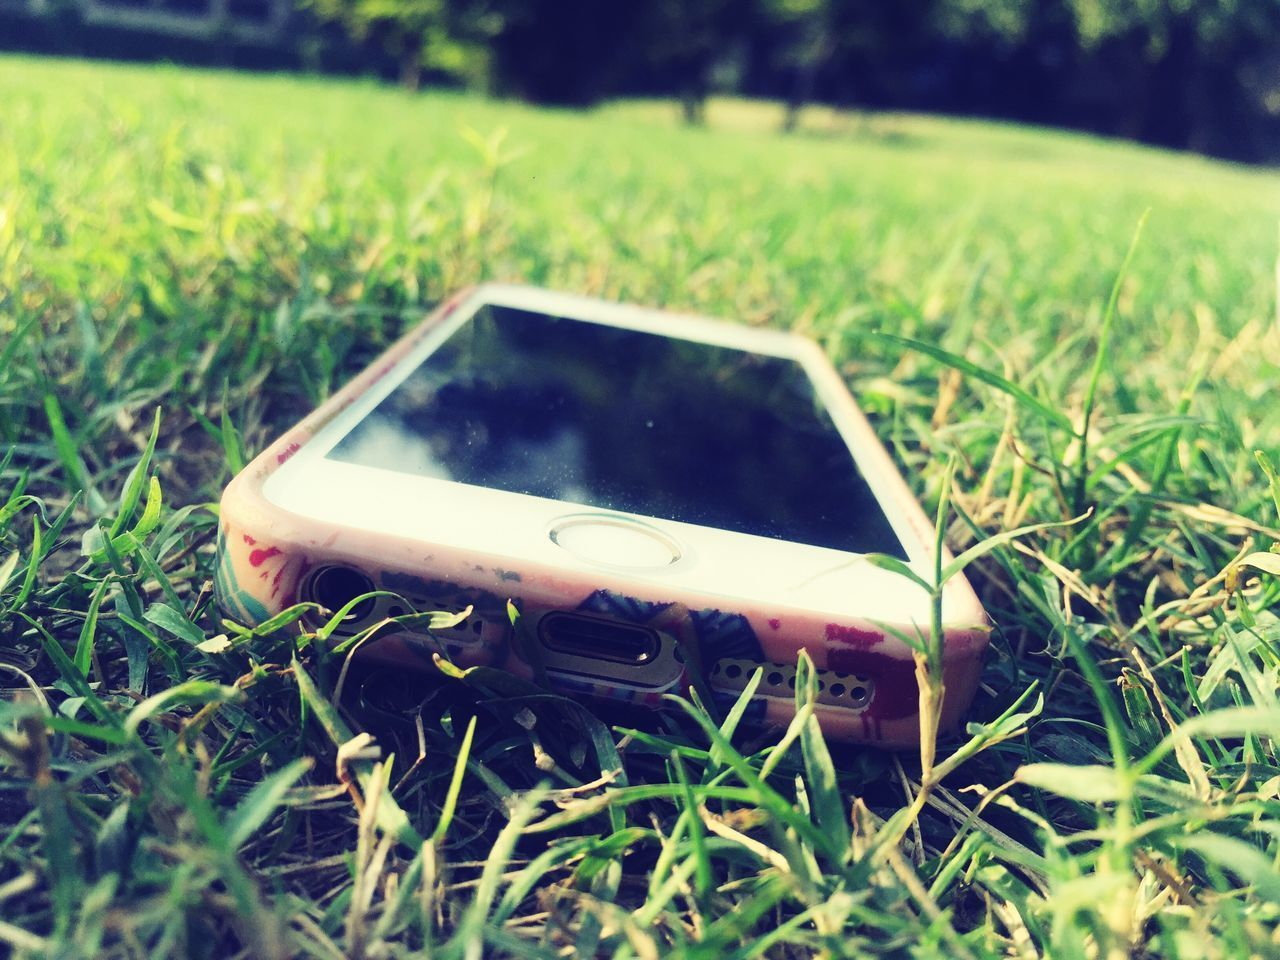 Phone lying in the grass in daylight Phone Grass Daylight Green First Eyeem Photo